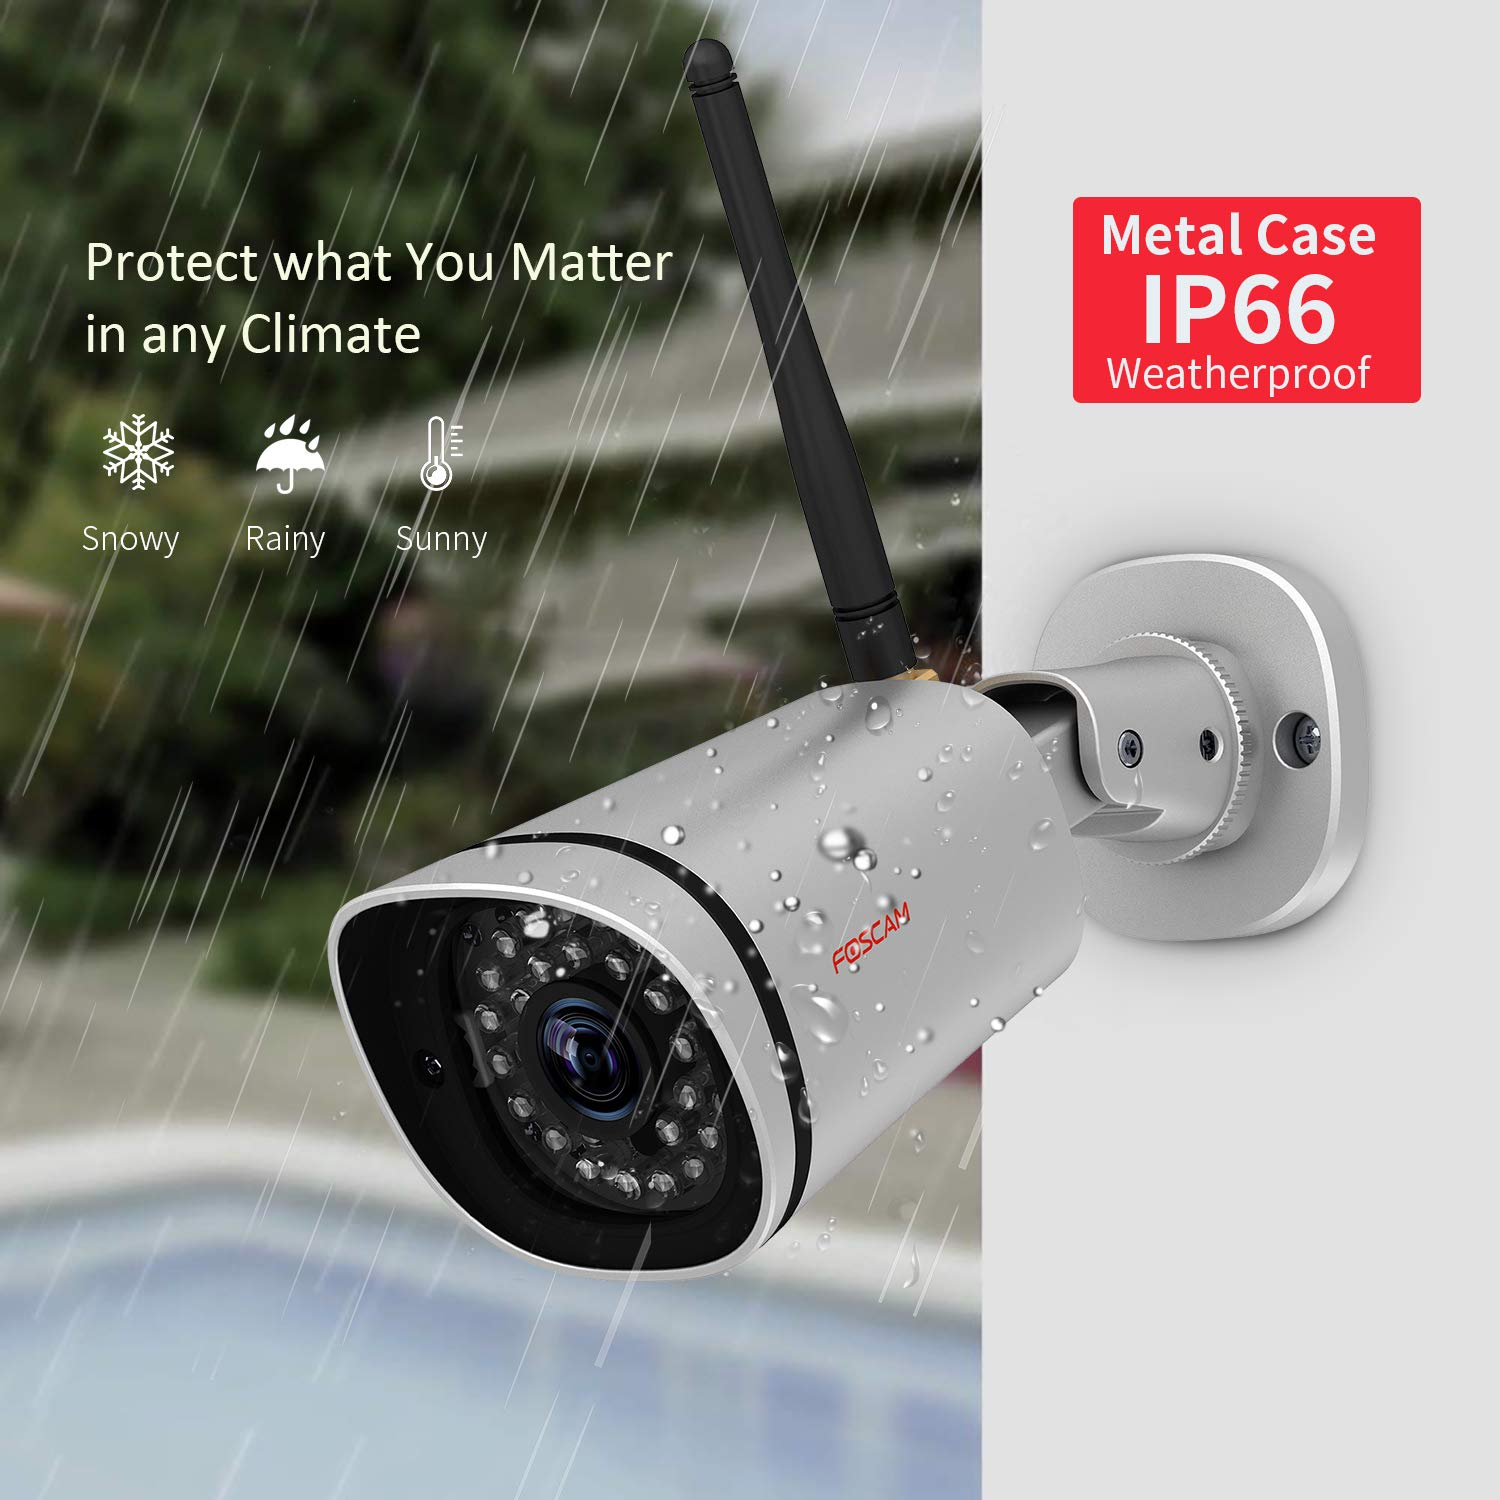 Foscam HD 1080P Outdoor WiFi Security Camera – Weatherproof IP66 Bullet /  2 1MP IP Wireless Surveillance Camera System with iOS/Android App, Night